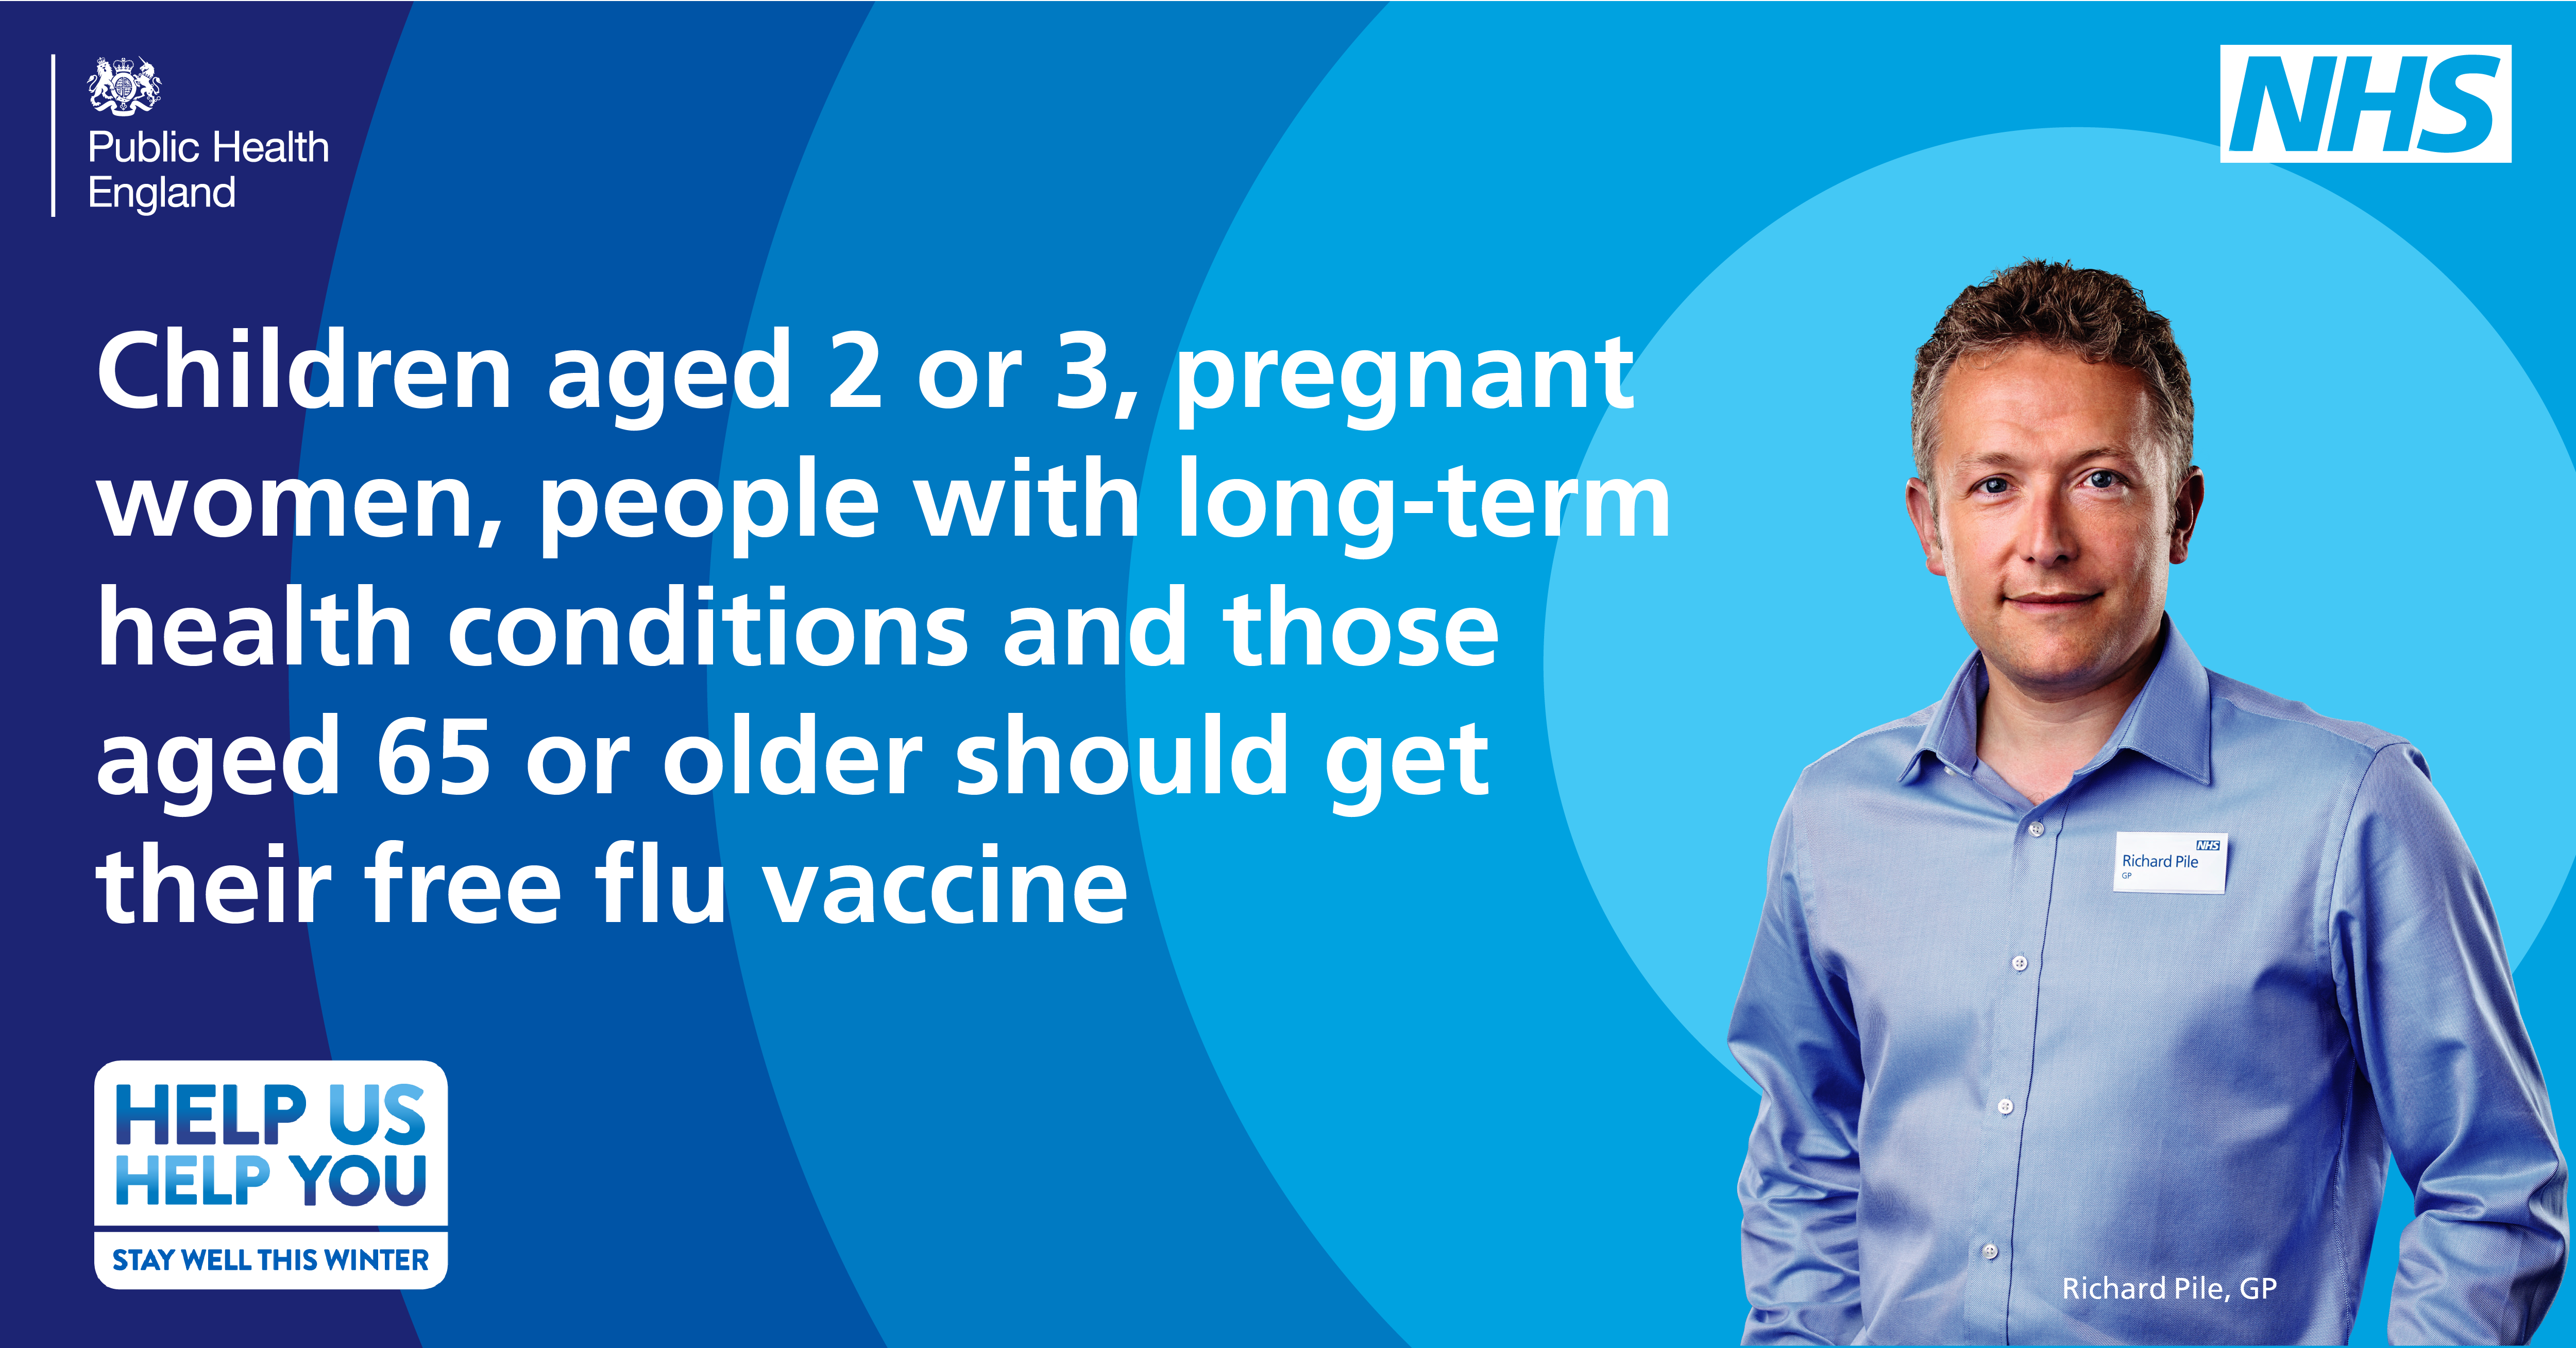 Children aged 2 or 3, pregnant women, people with long-term health conditions and those aged 65 or older should get their free flu vaccine